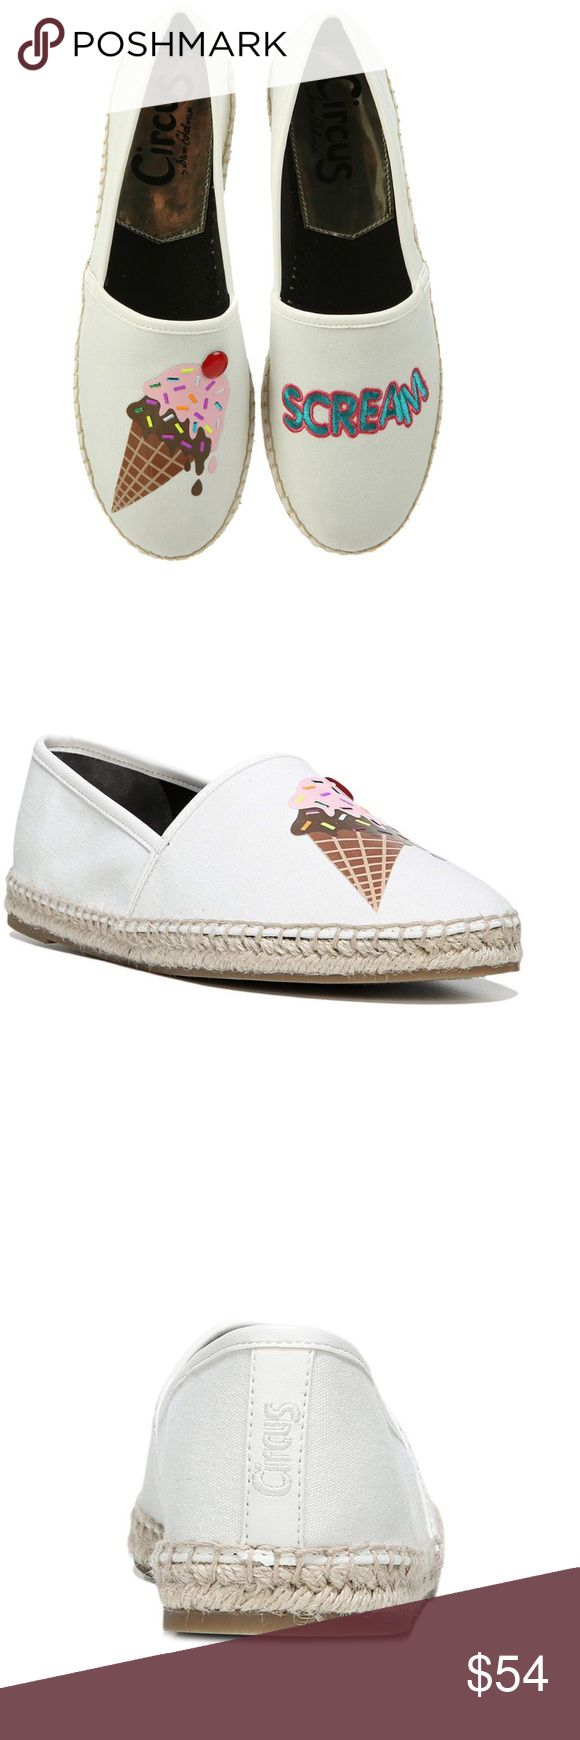 "🎸NWT🎸Sam Edelman Circus Ice Cream Espadrilles Bright white Ice ""Scream"" Leni espadrille. Slip on espadrille boasting old graphics for a pop of personality. Slip-on, man made upper, rubber sole. Sam Edelman Shoes Espadrilles"